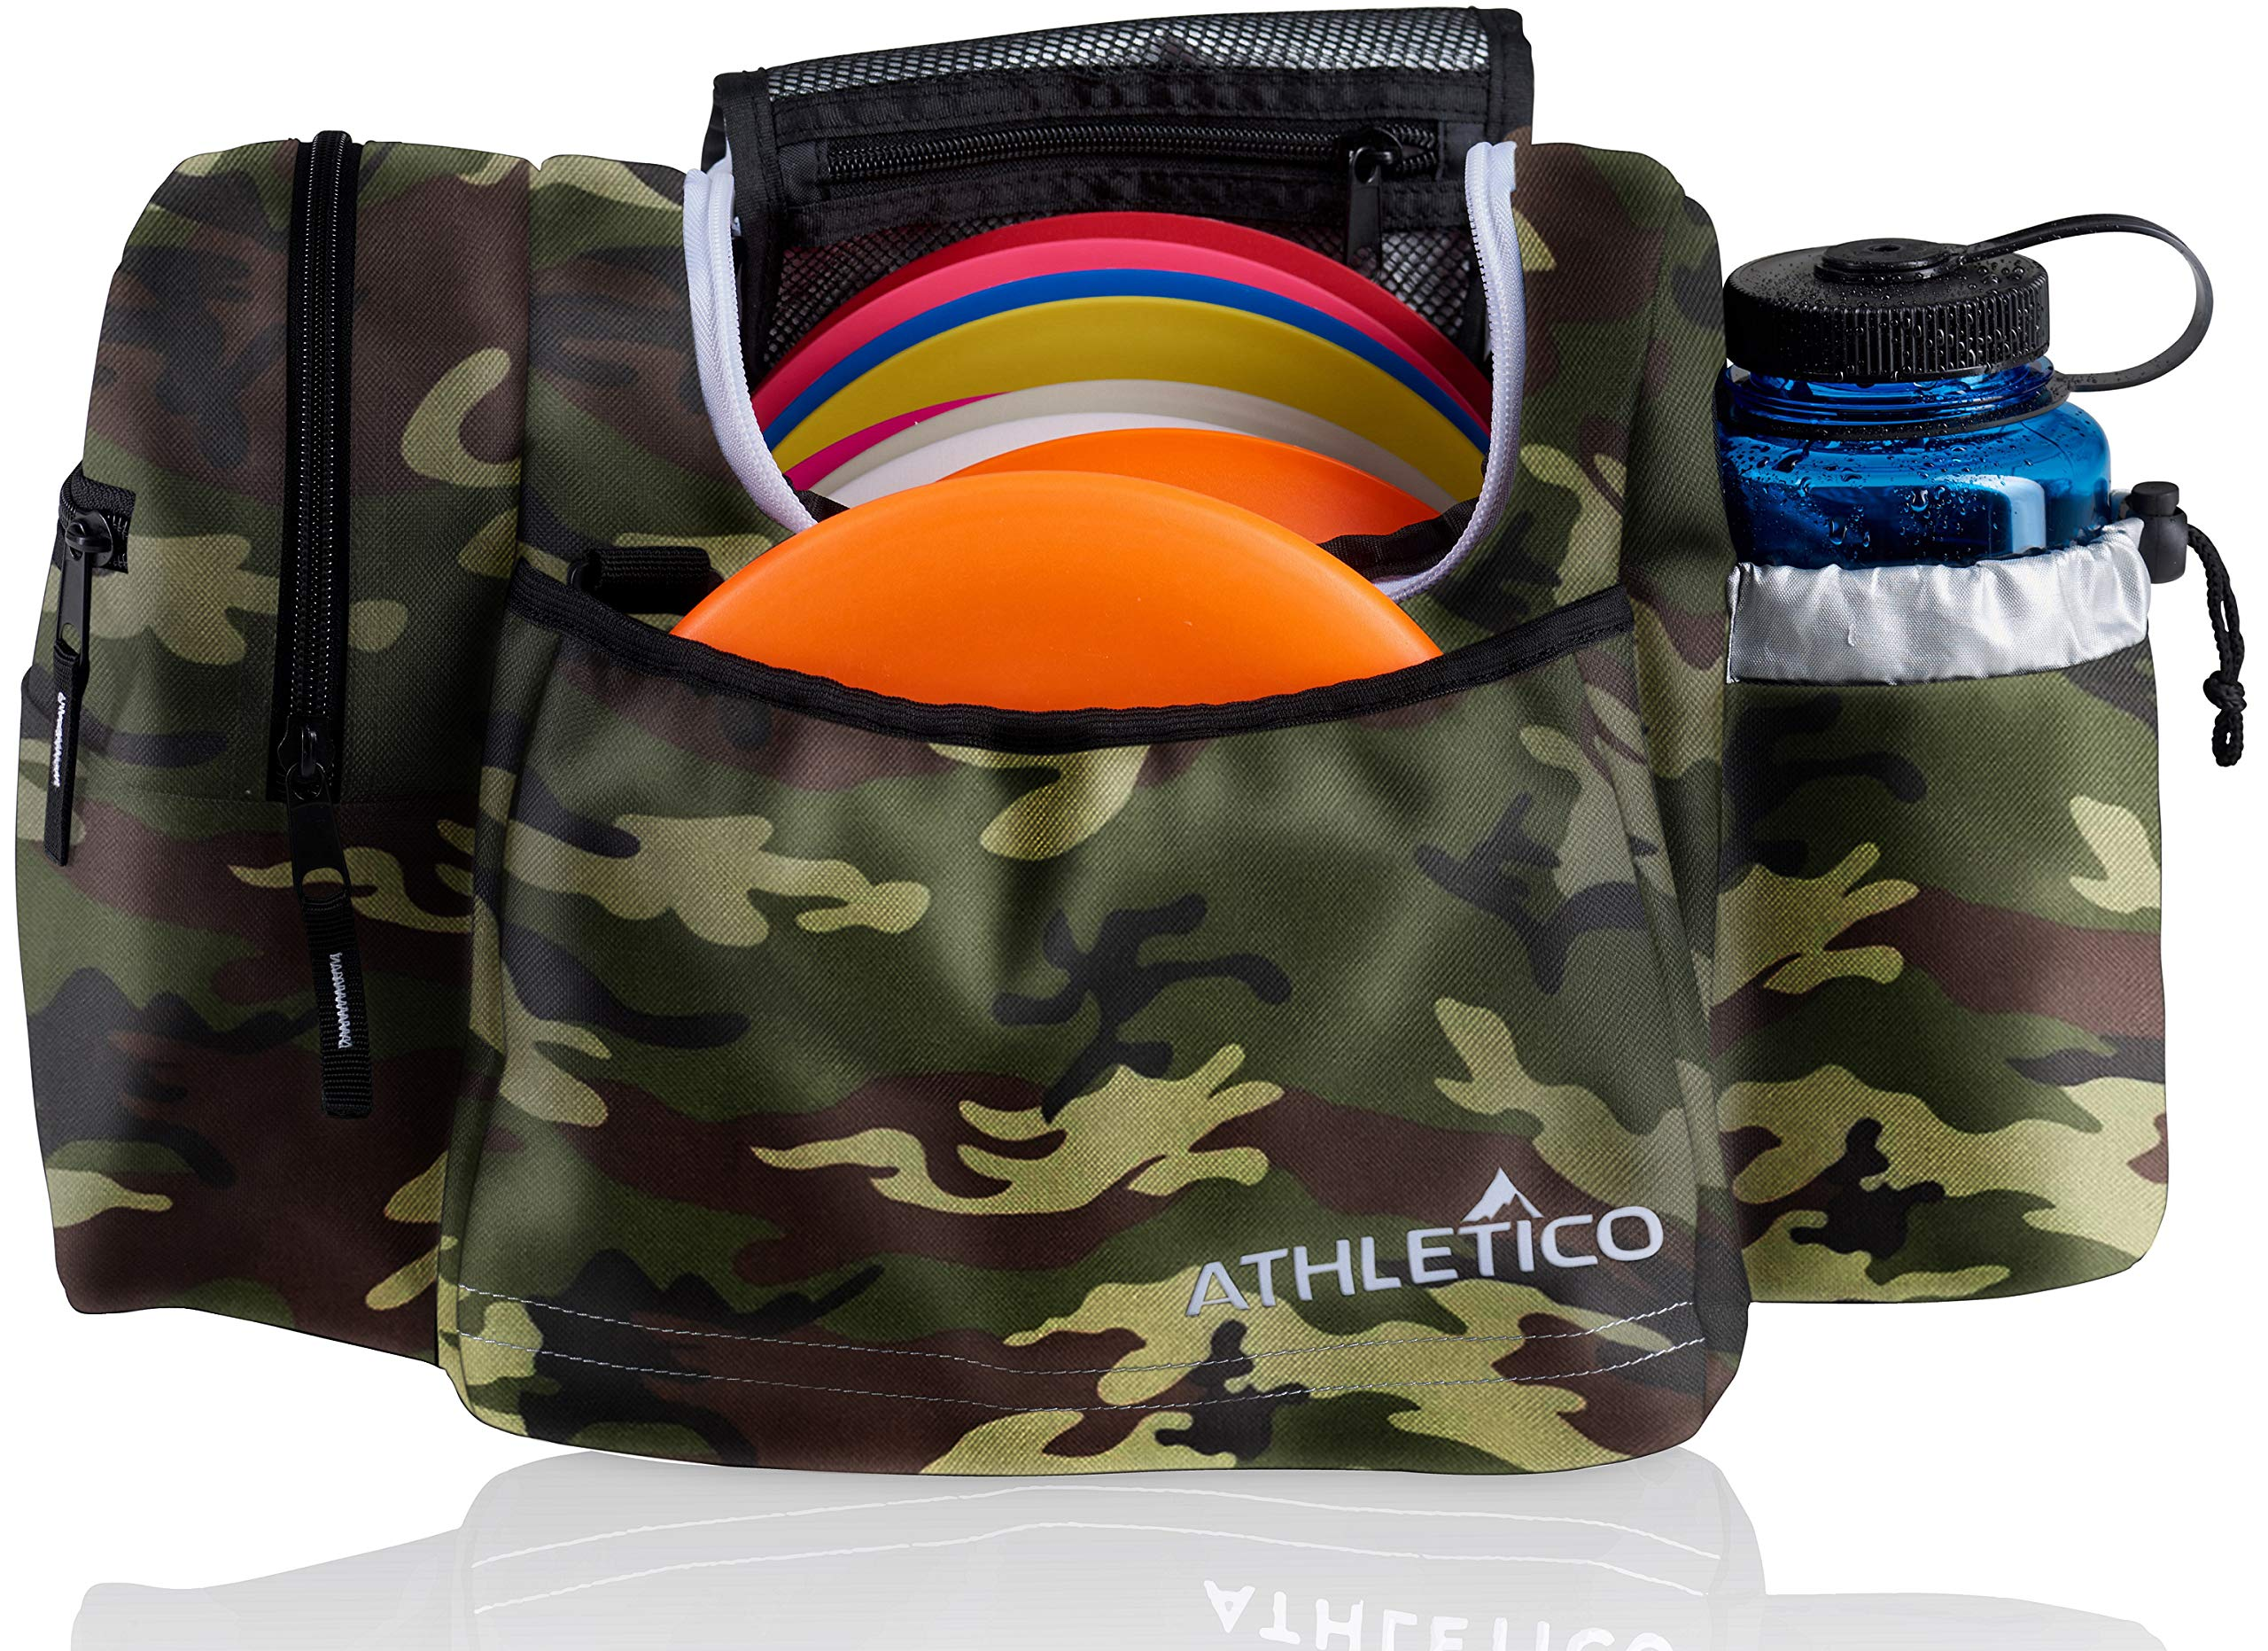 Athletico Disc Golf Bag - Tote Bag for Frisbee Golf - Holds 10-14 Discs, Water Bottle, and Accessories (Green Camo) by Athletico